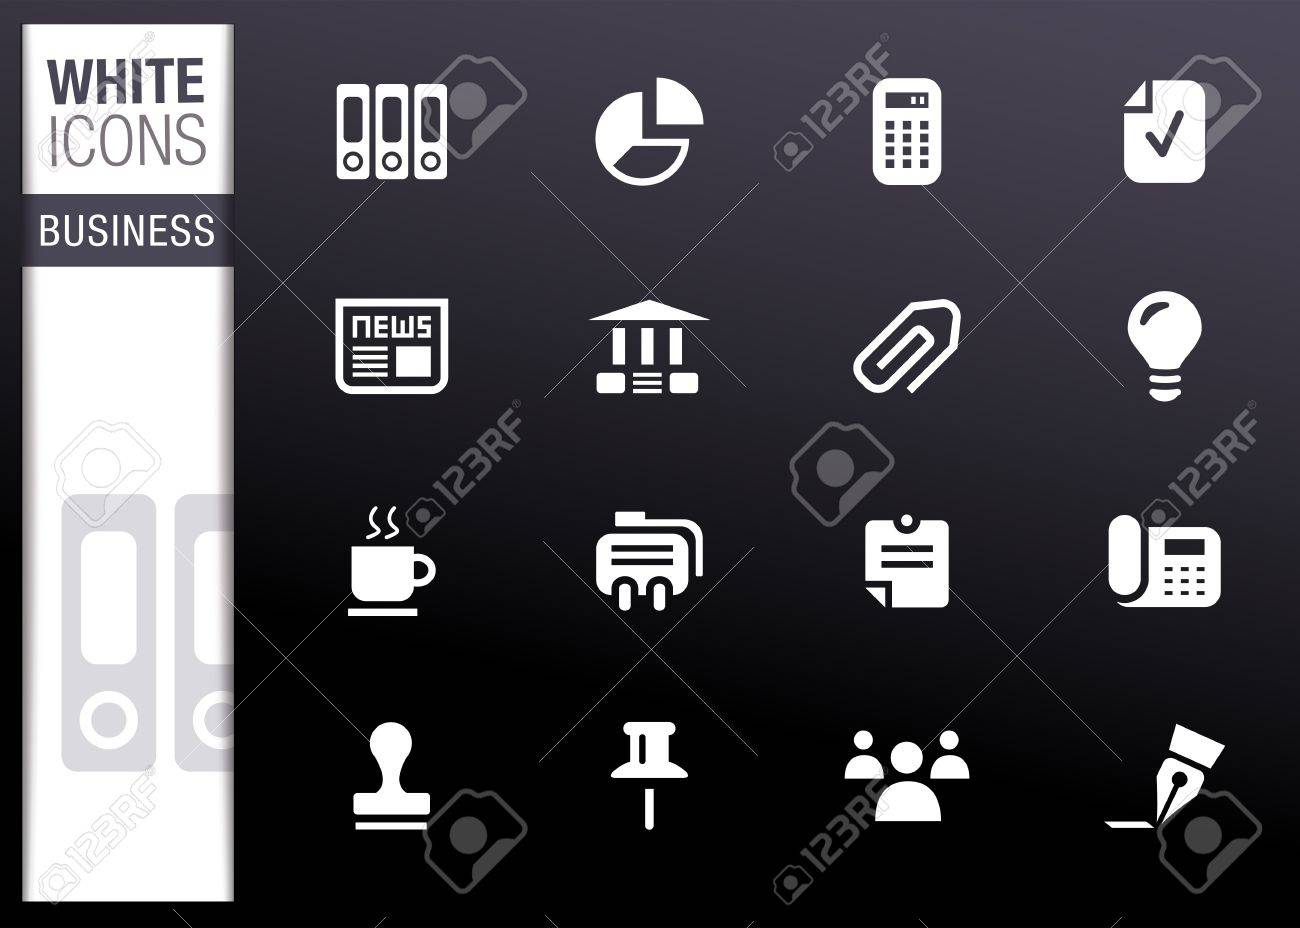 White - Office and Business icons Stock Vector - 13384349